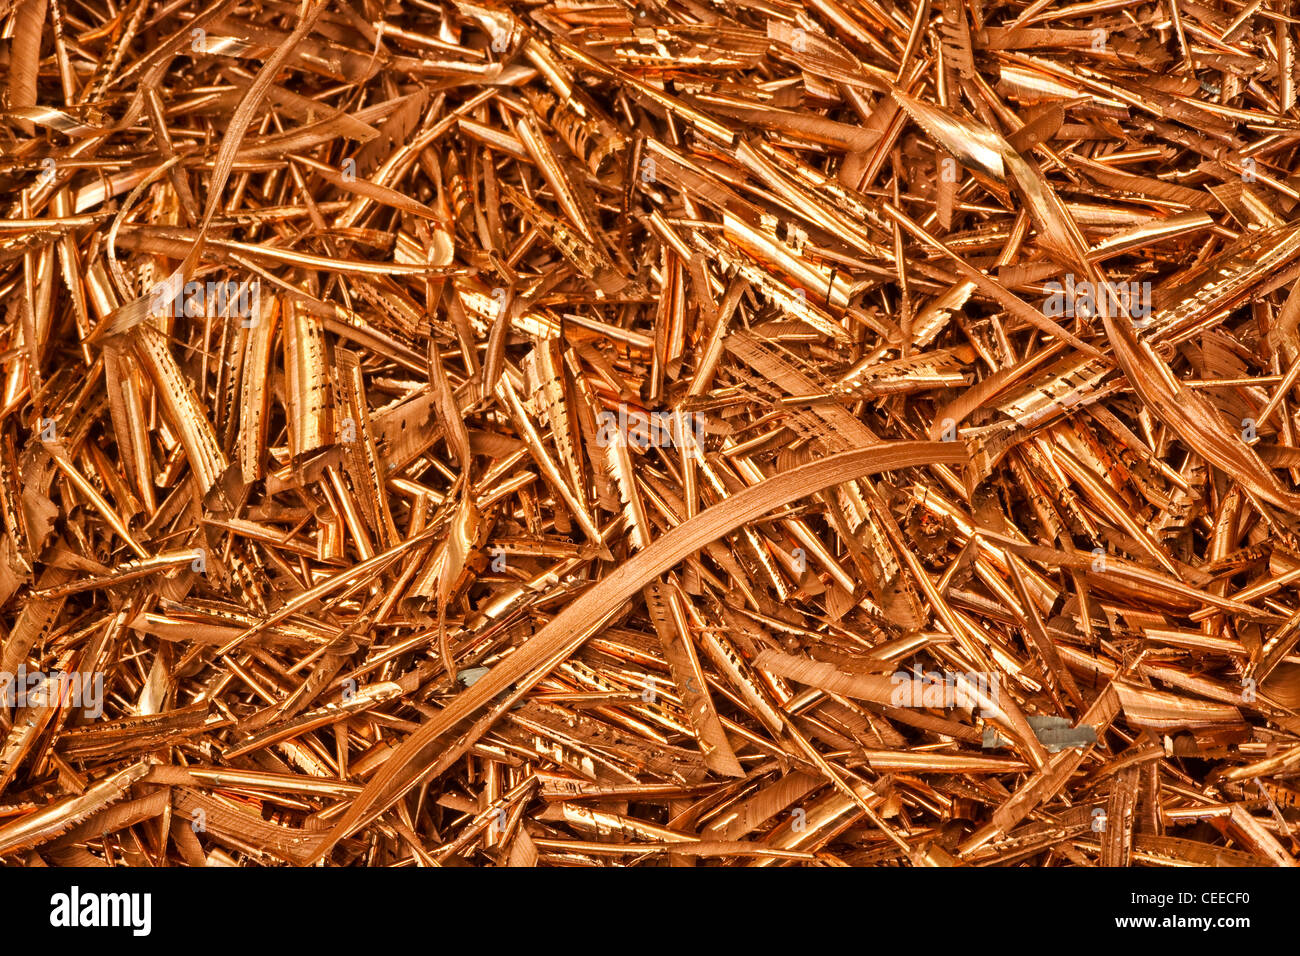 Close-up image of copper shards from a machining process - Stock Image